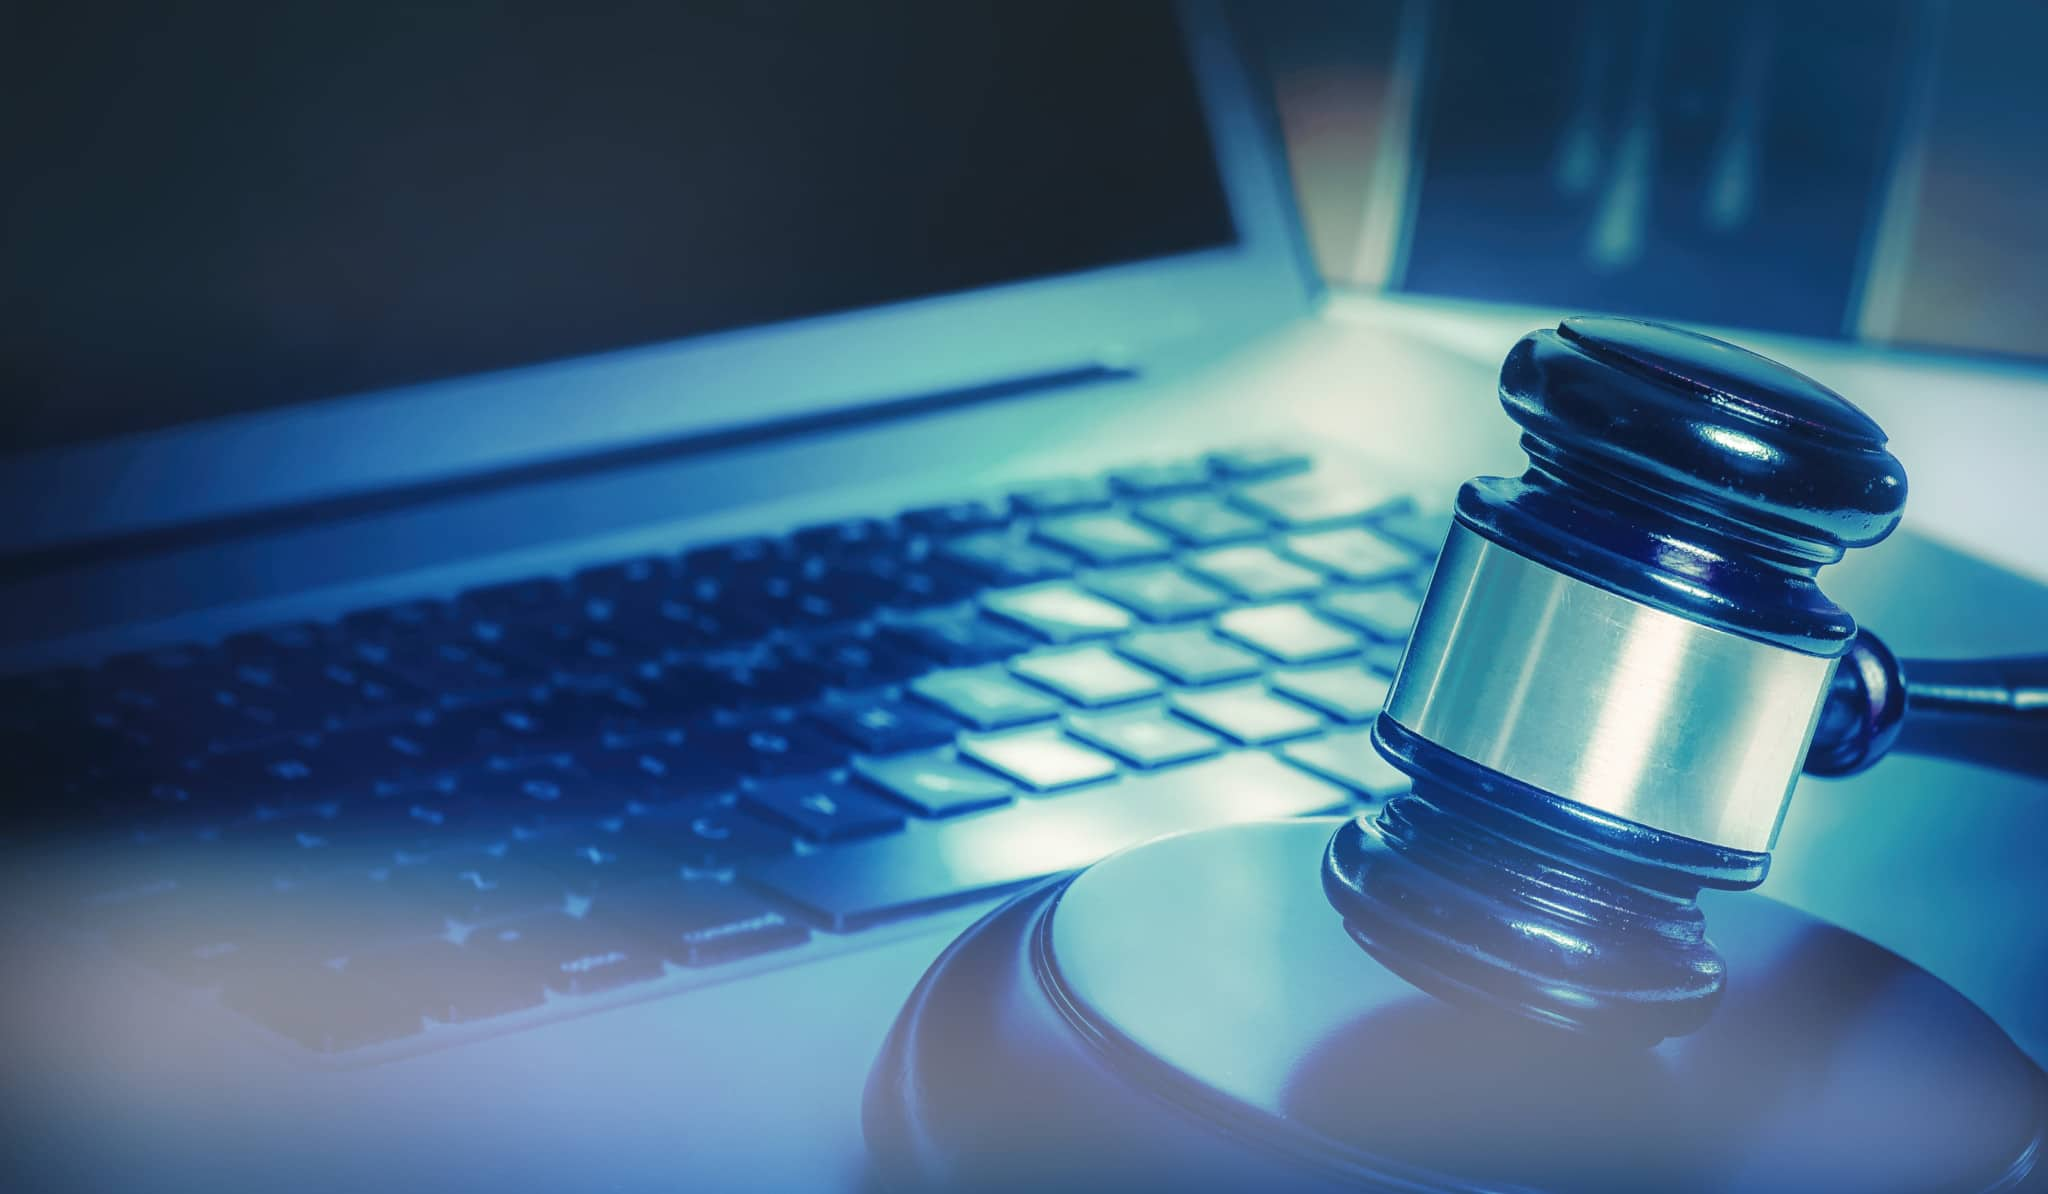 This image shows a gavel and a laptop as cybersecurity is important for law firms.